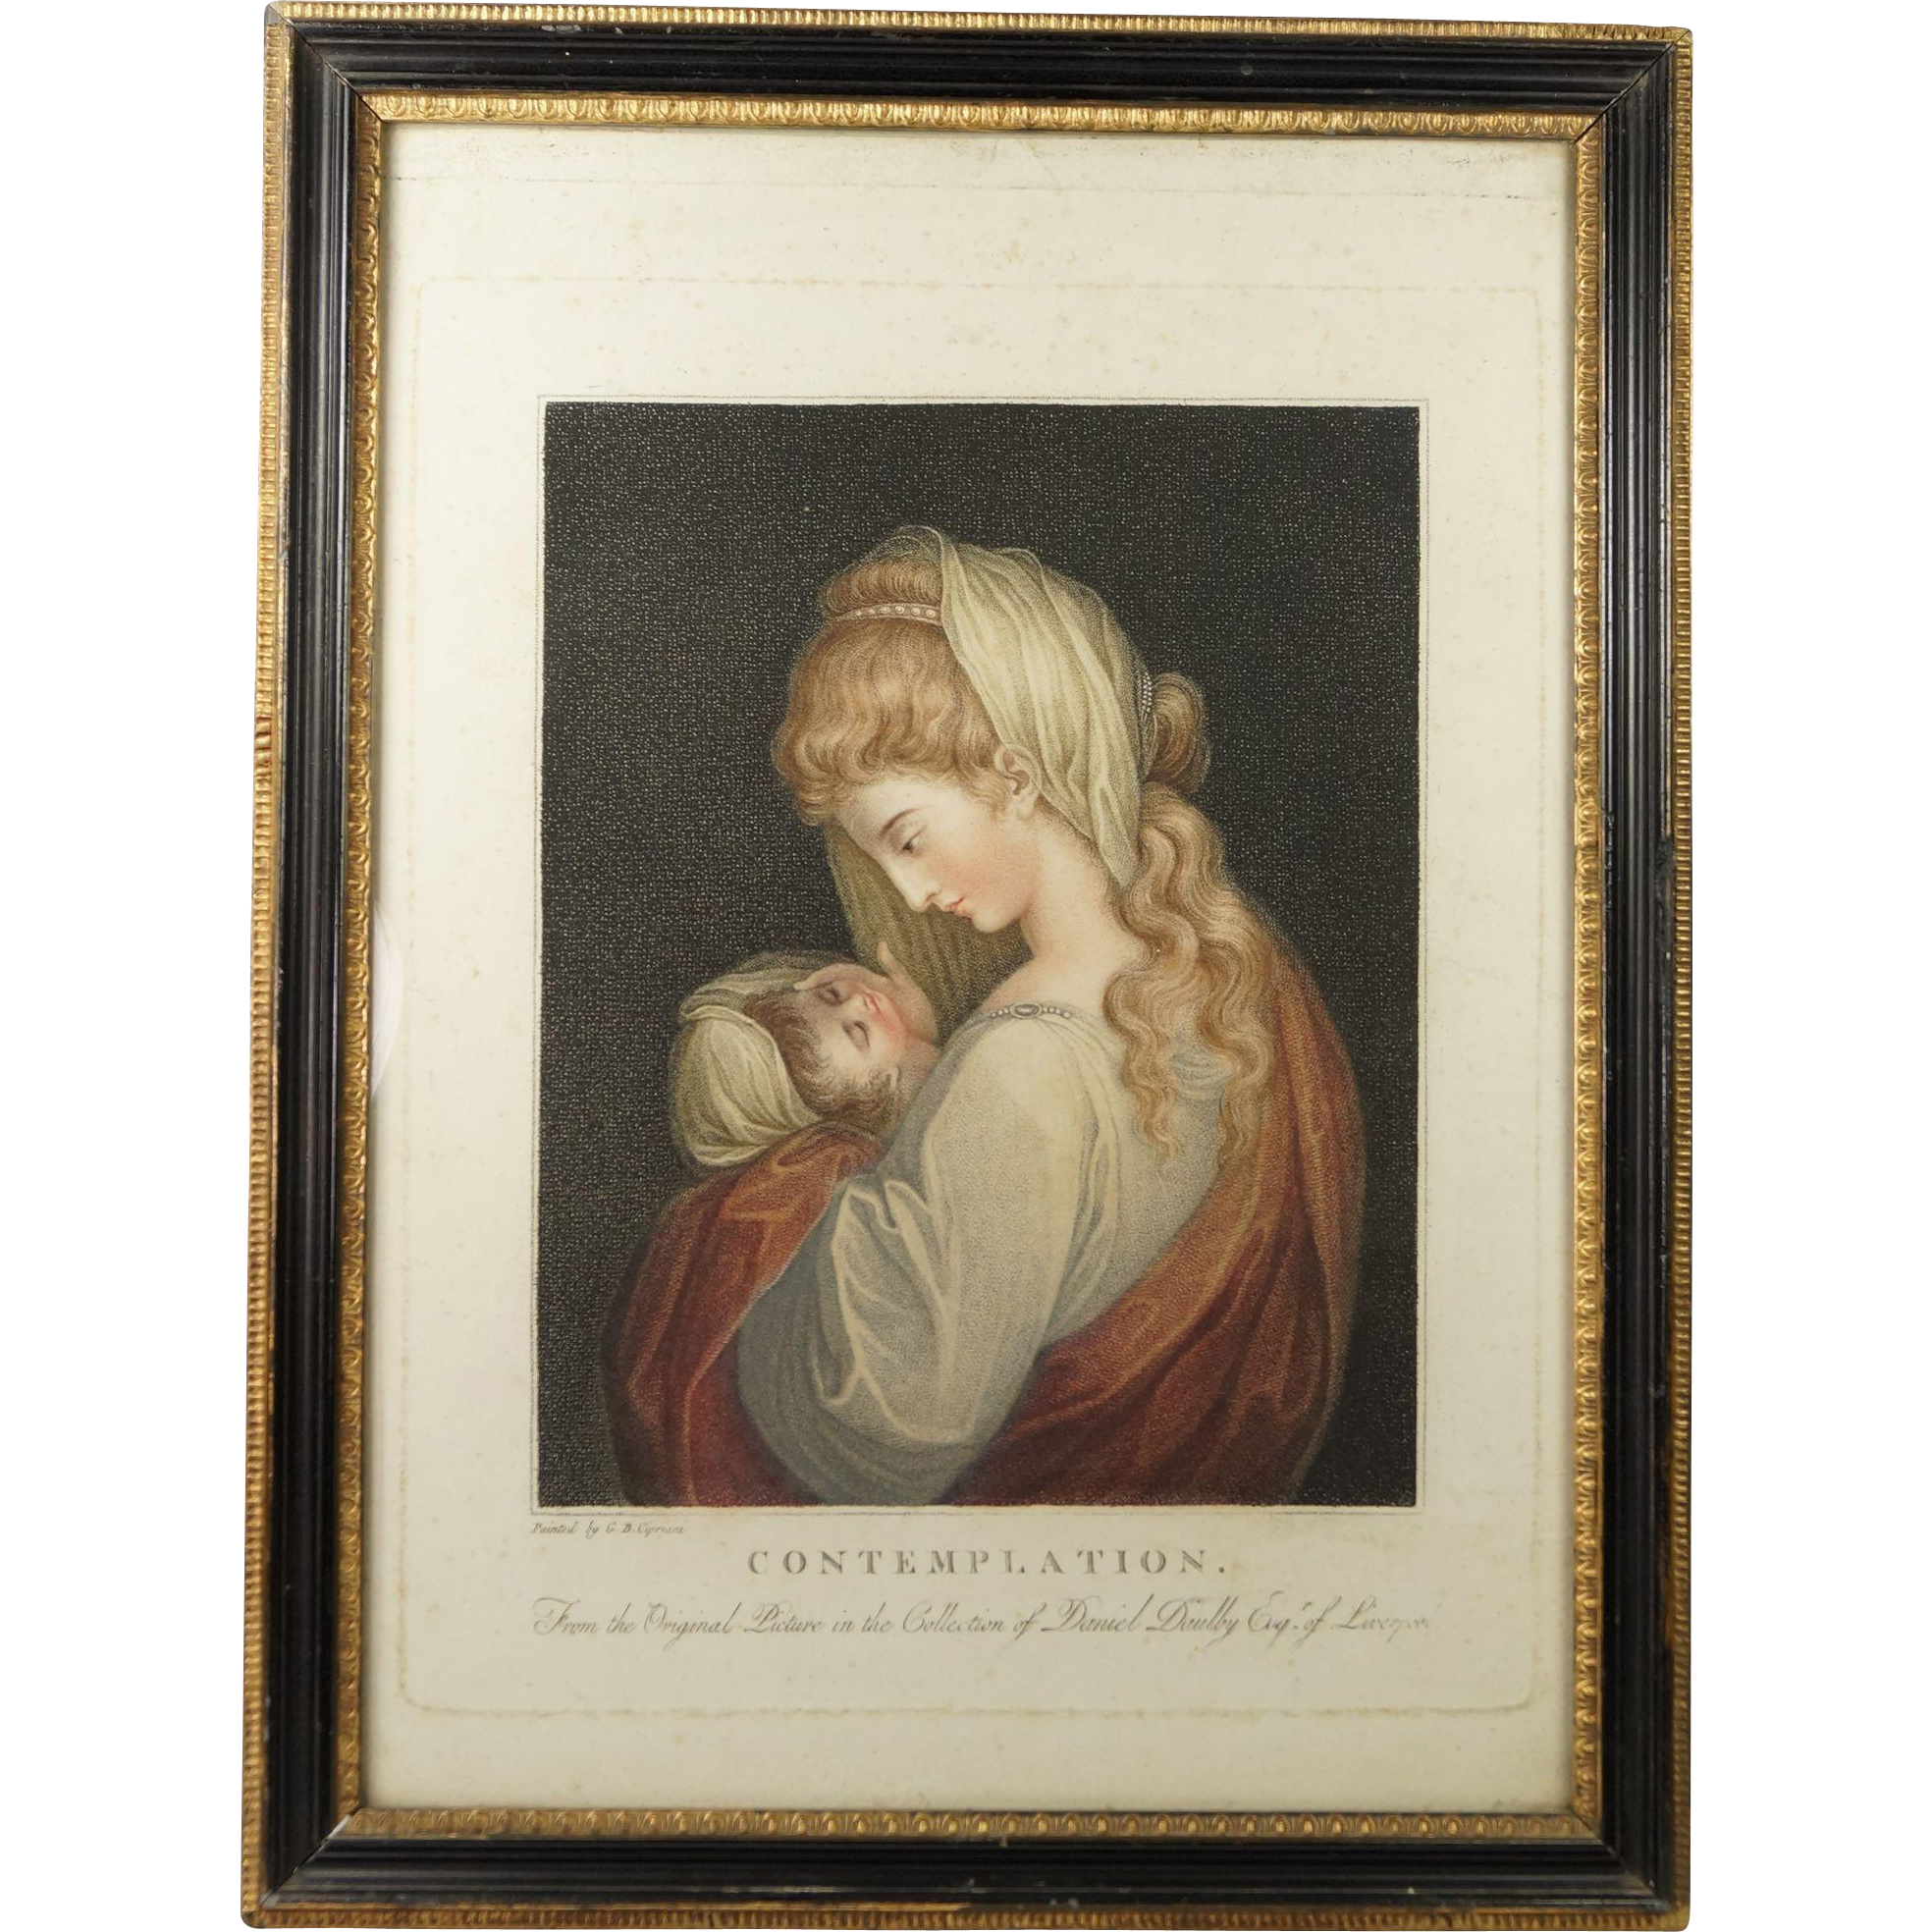 18th Century Georgian Mezzotint Engraving Contemplation after Cipriani English Circa 1791